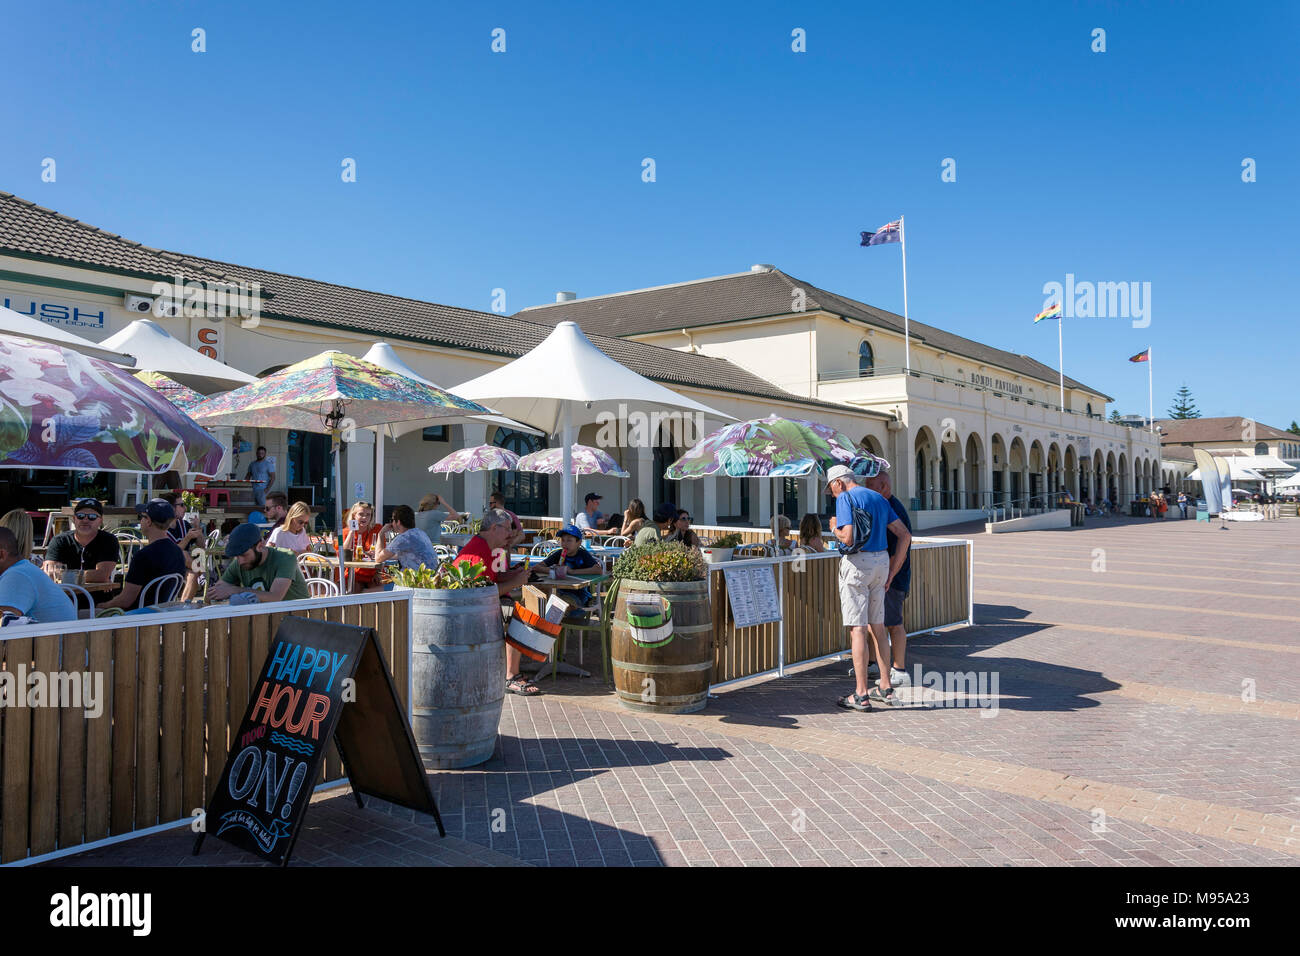 Lush on Bondi Cafe Restaurant at Bondi Pavilion, Bondi Beach, Sydney, New South Wales, Australia - Stock Image